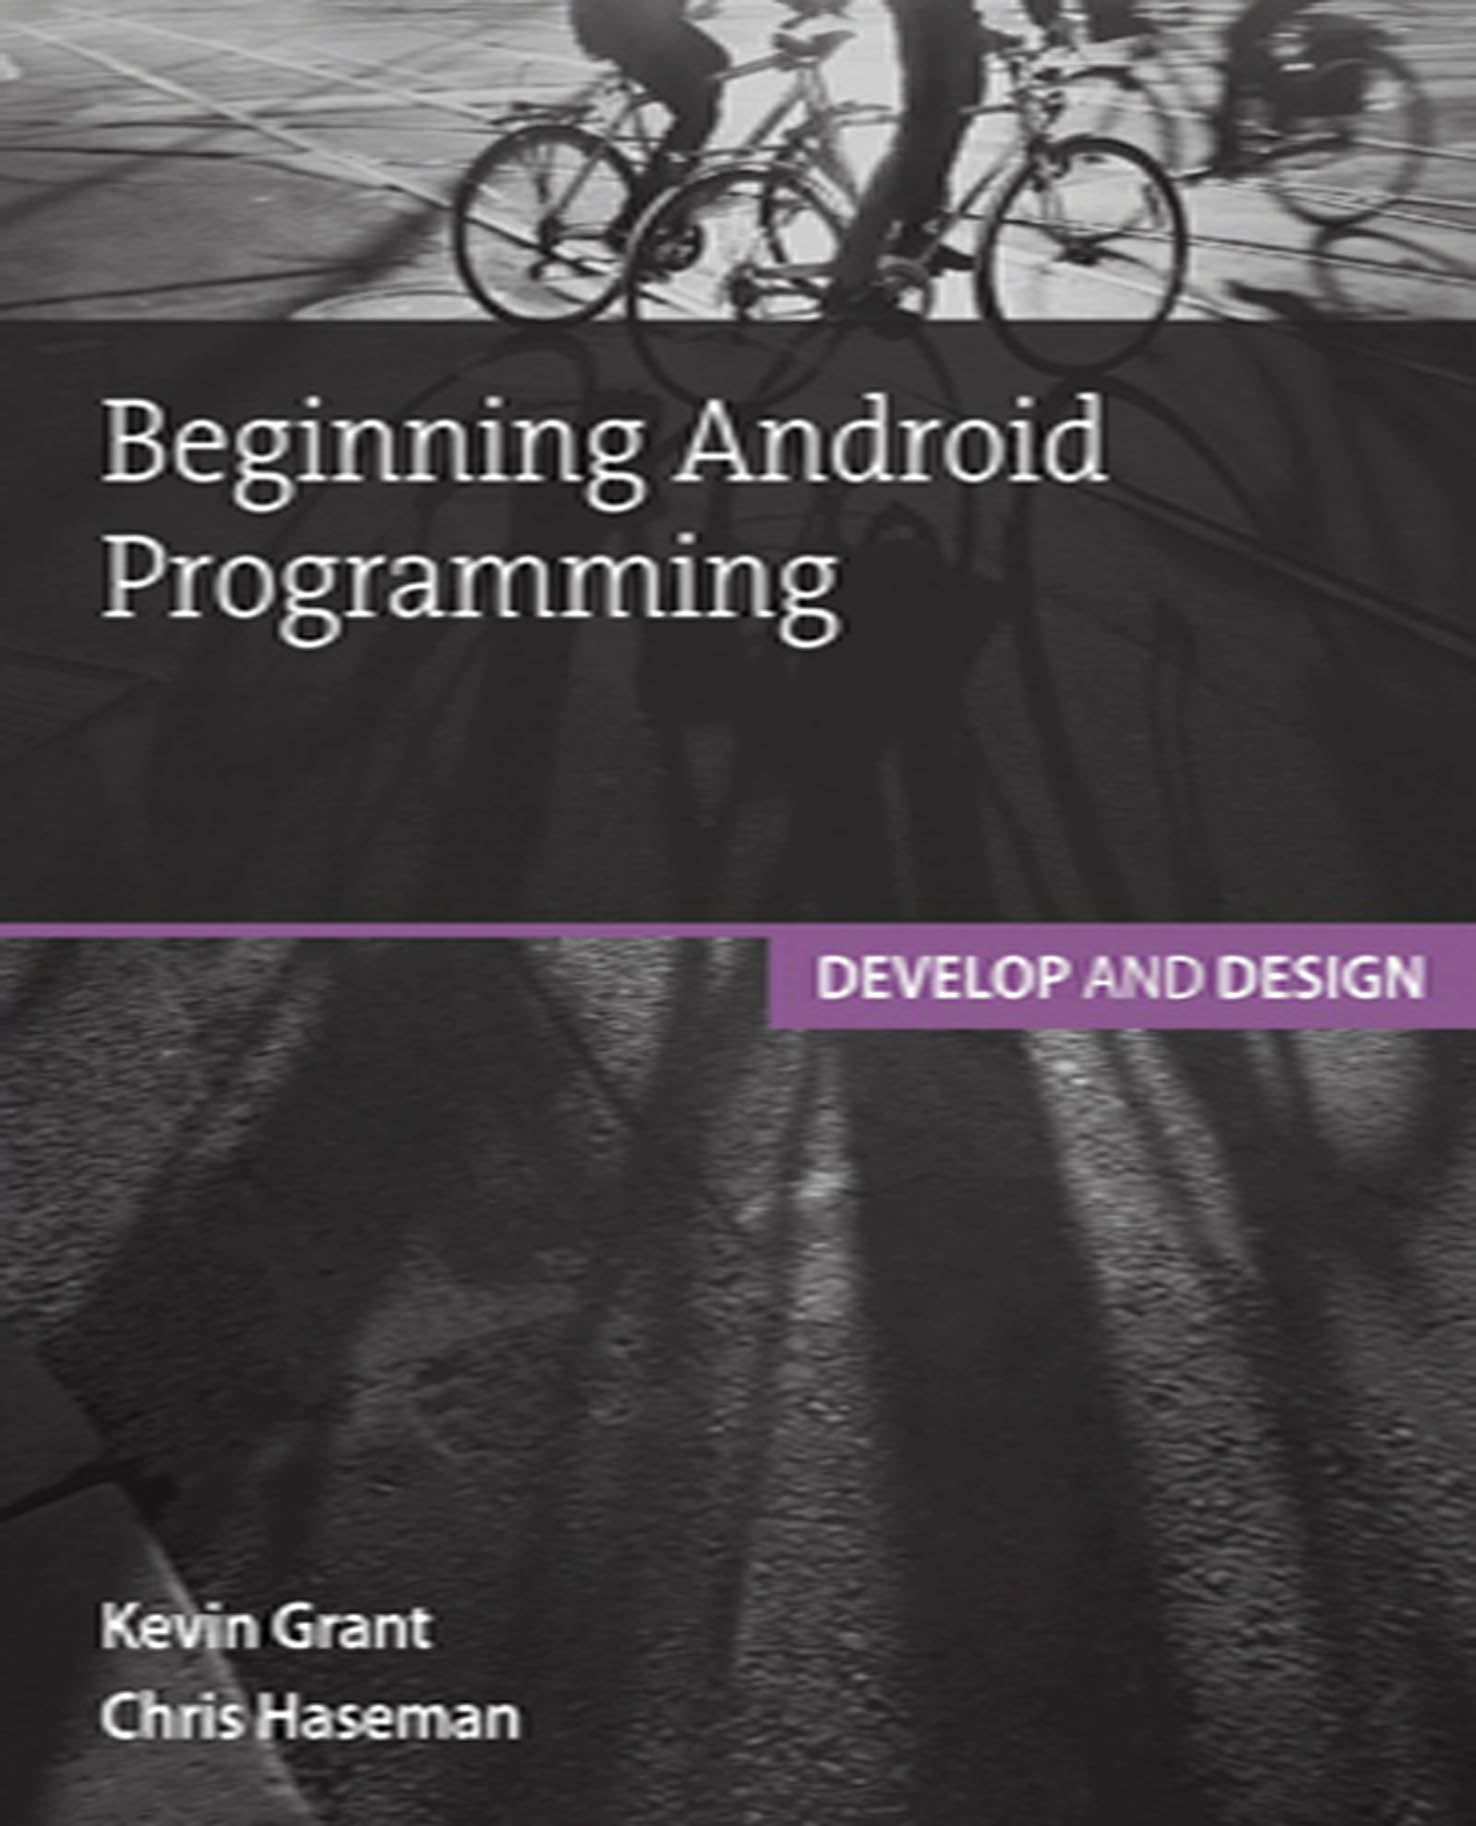 Beginning Android Programming